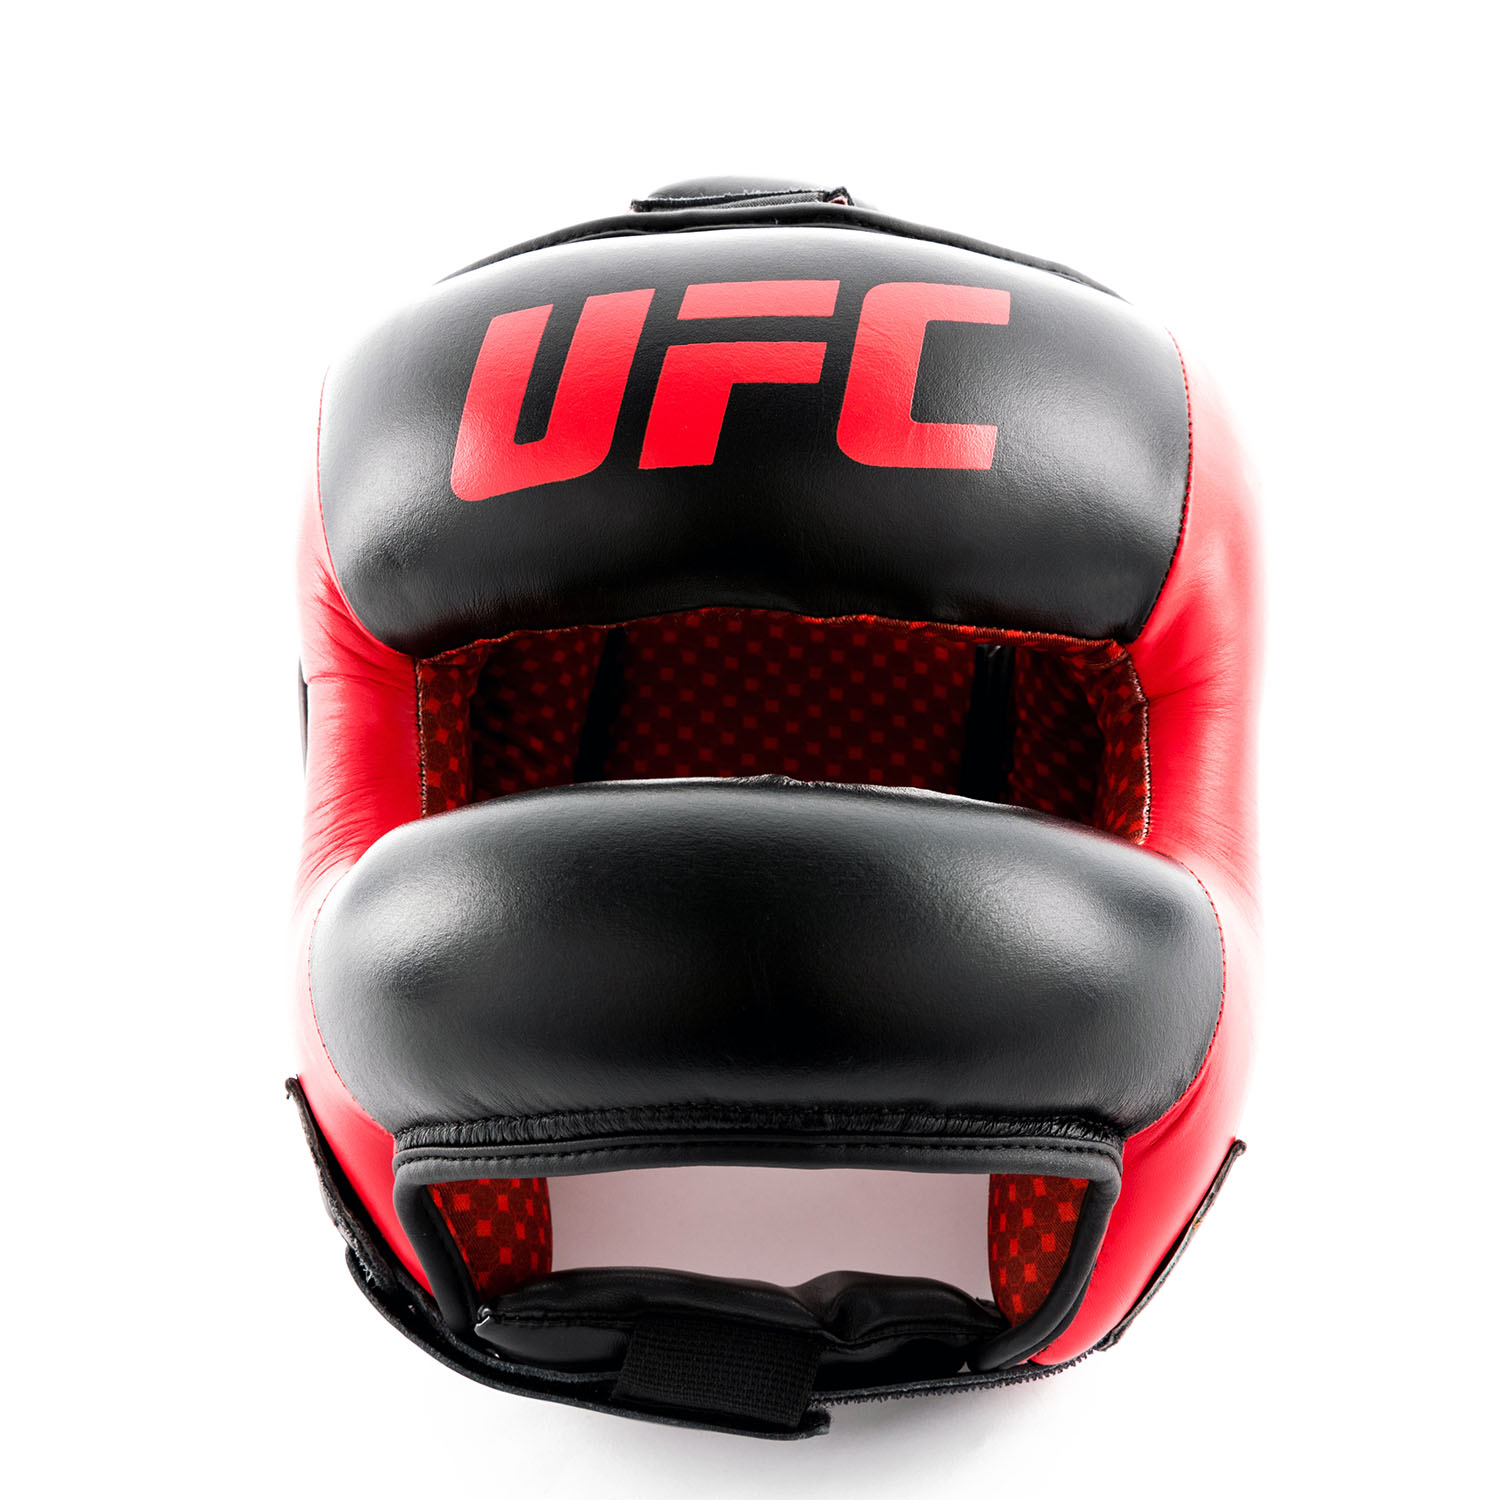 FULL FACE TRAINING HEAD GEARbk-1.jpg